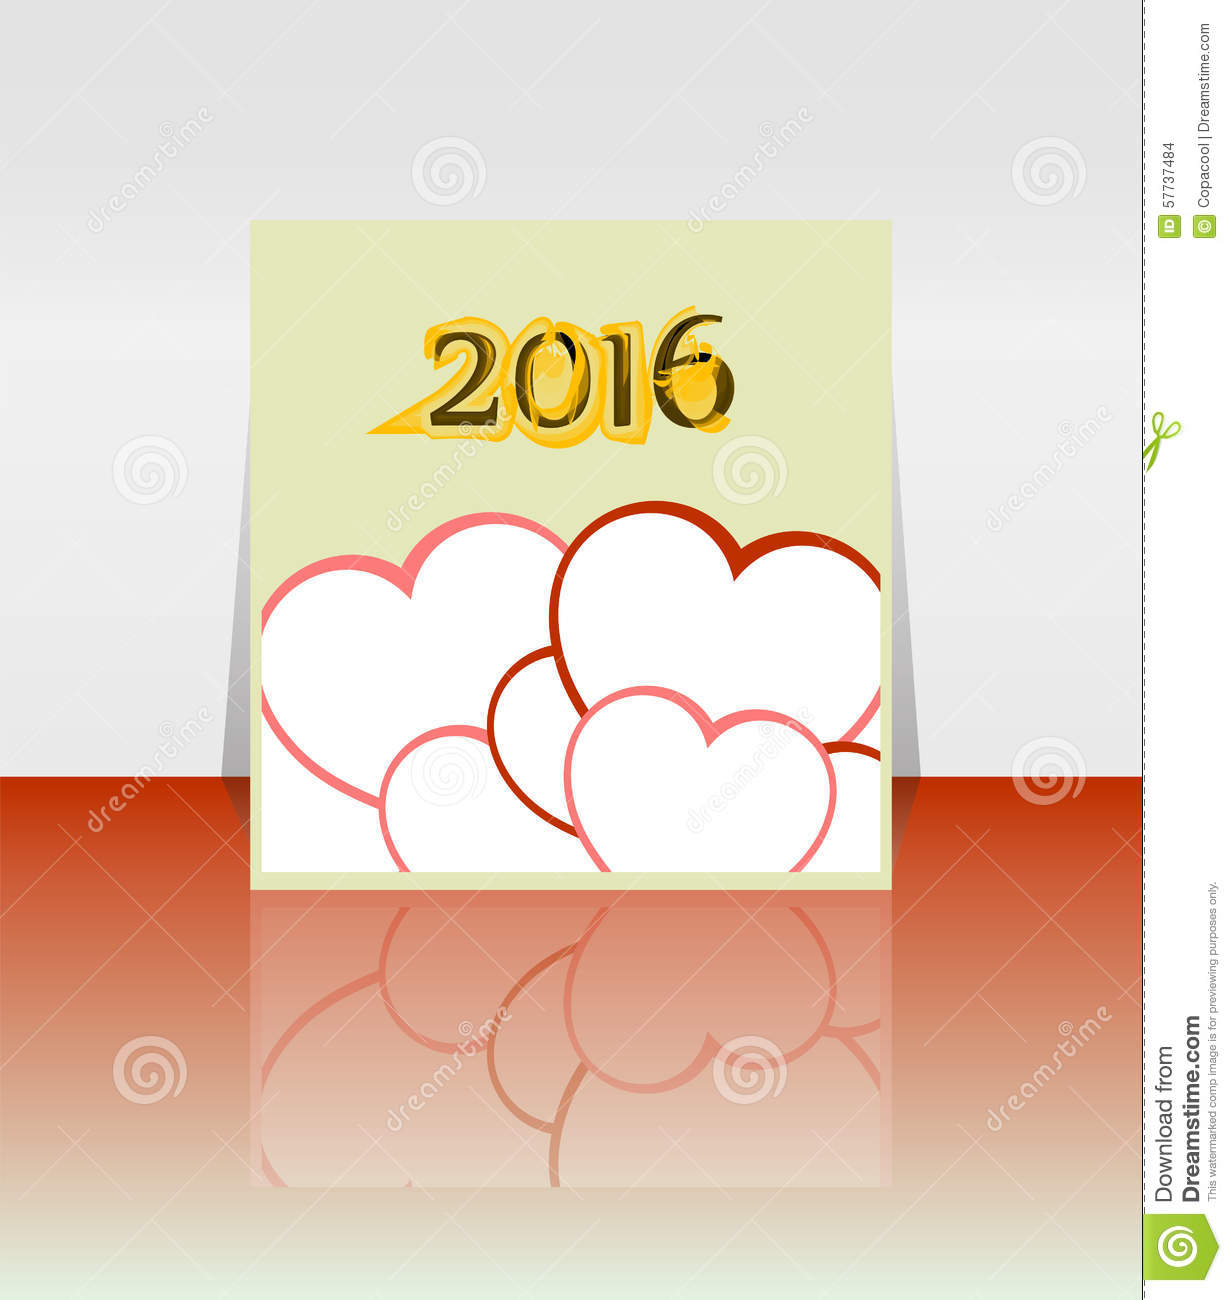 happy new year 2016 word on blank note book red heart shape happy new year 2016 word on blank note book red heart shape new year